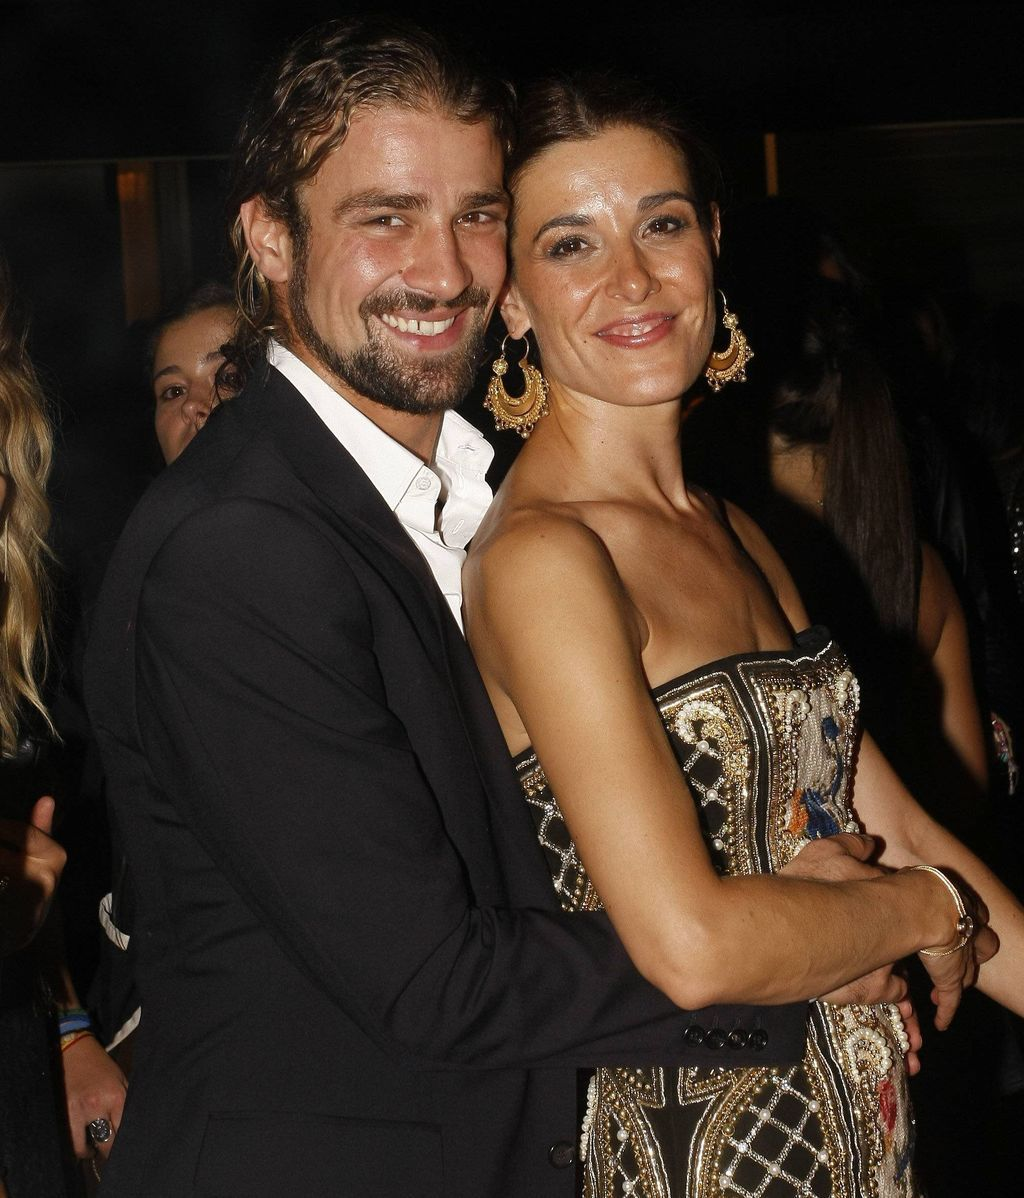 Biondo y Sánchez Silva, en la Vogue Fashion Night 2012